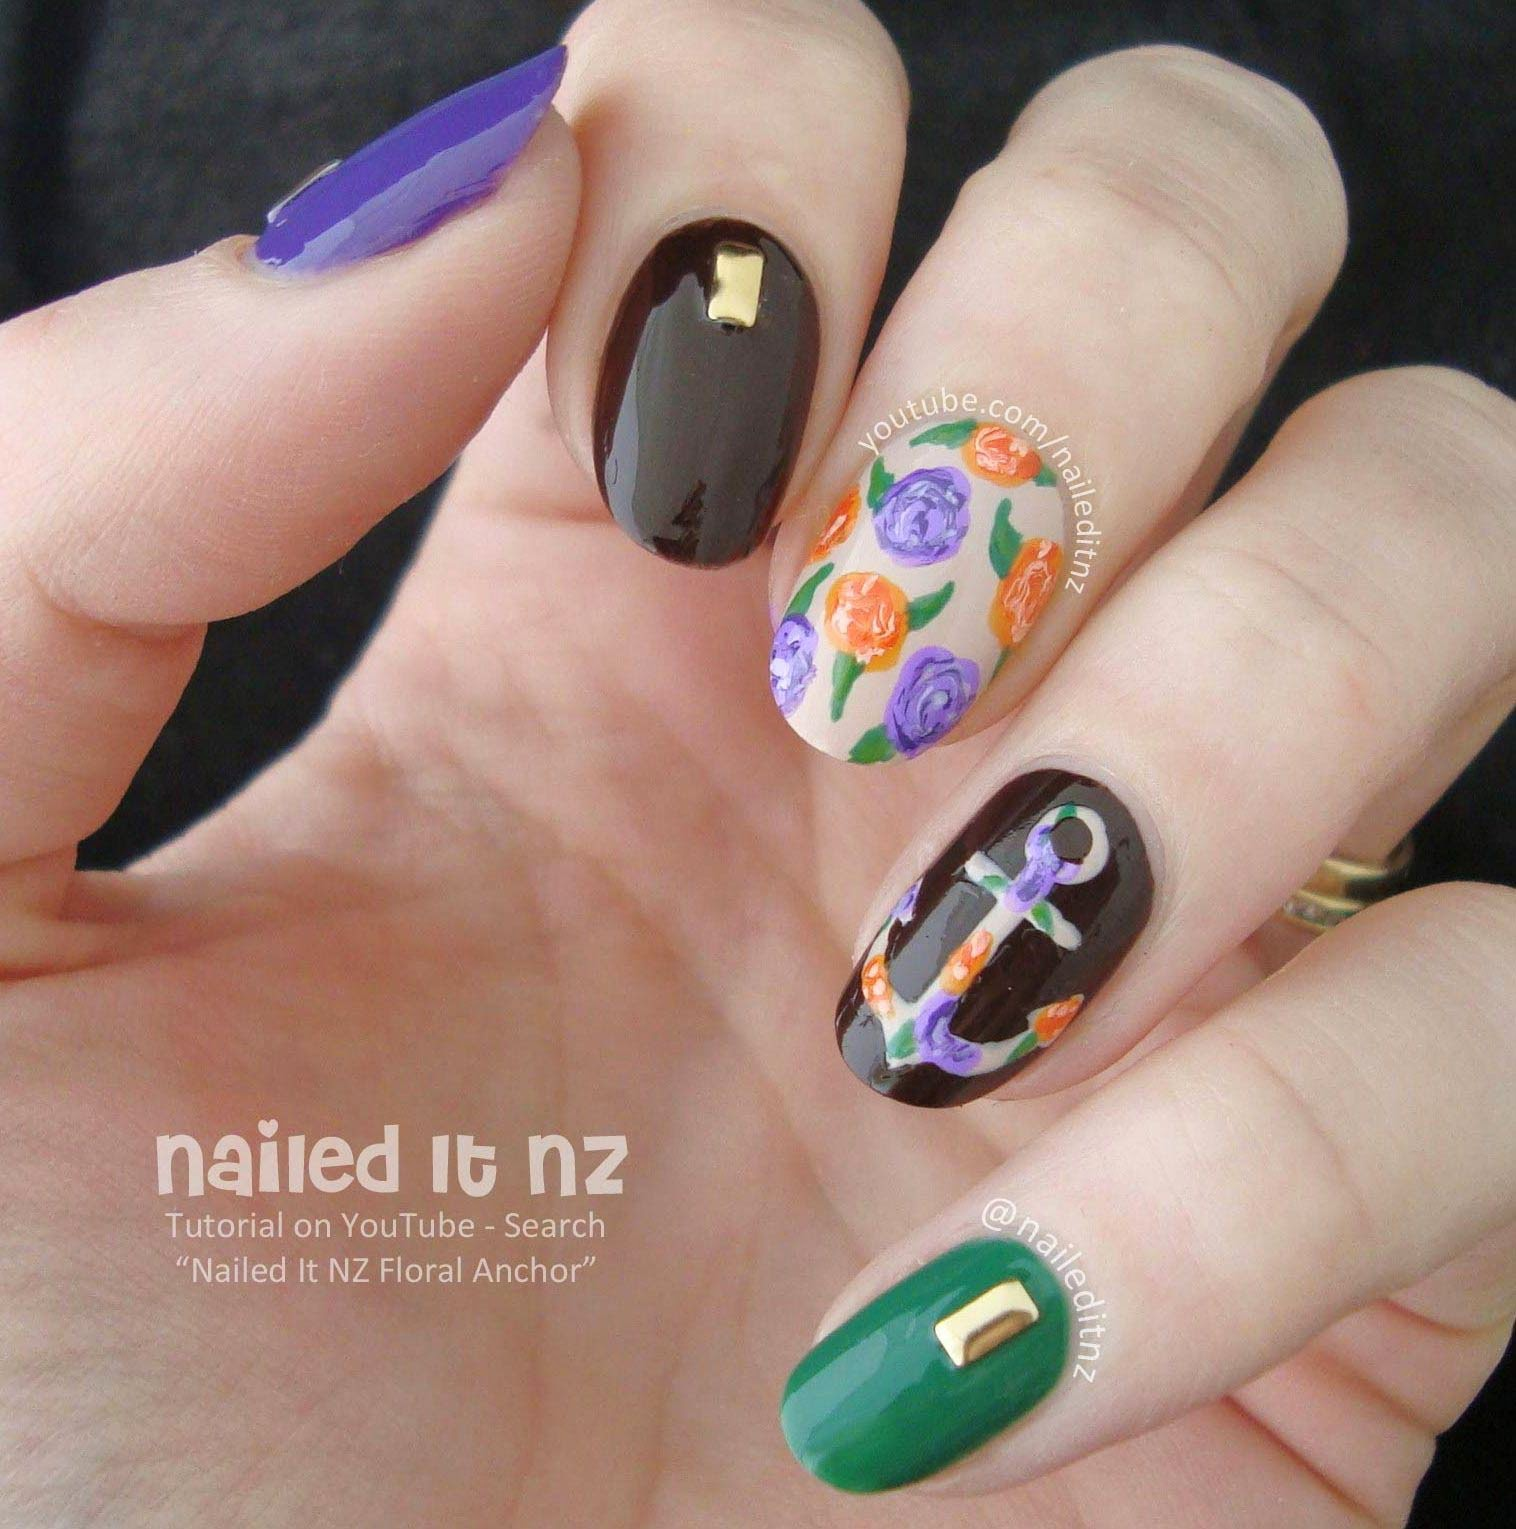 Floral Anchor Nail Art Tutorial